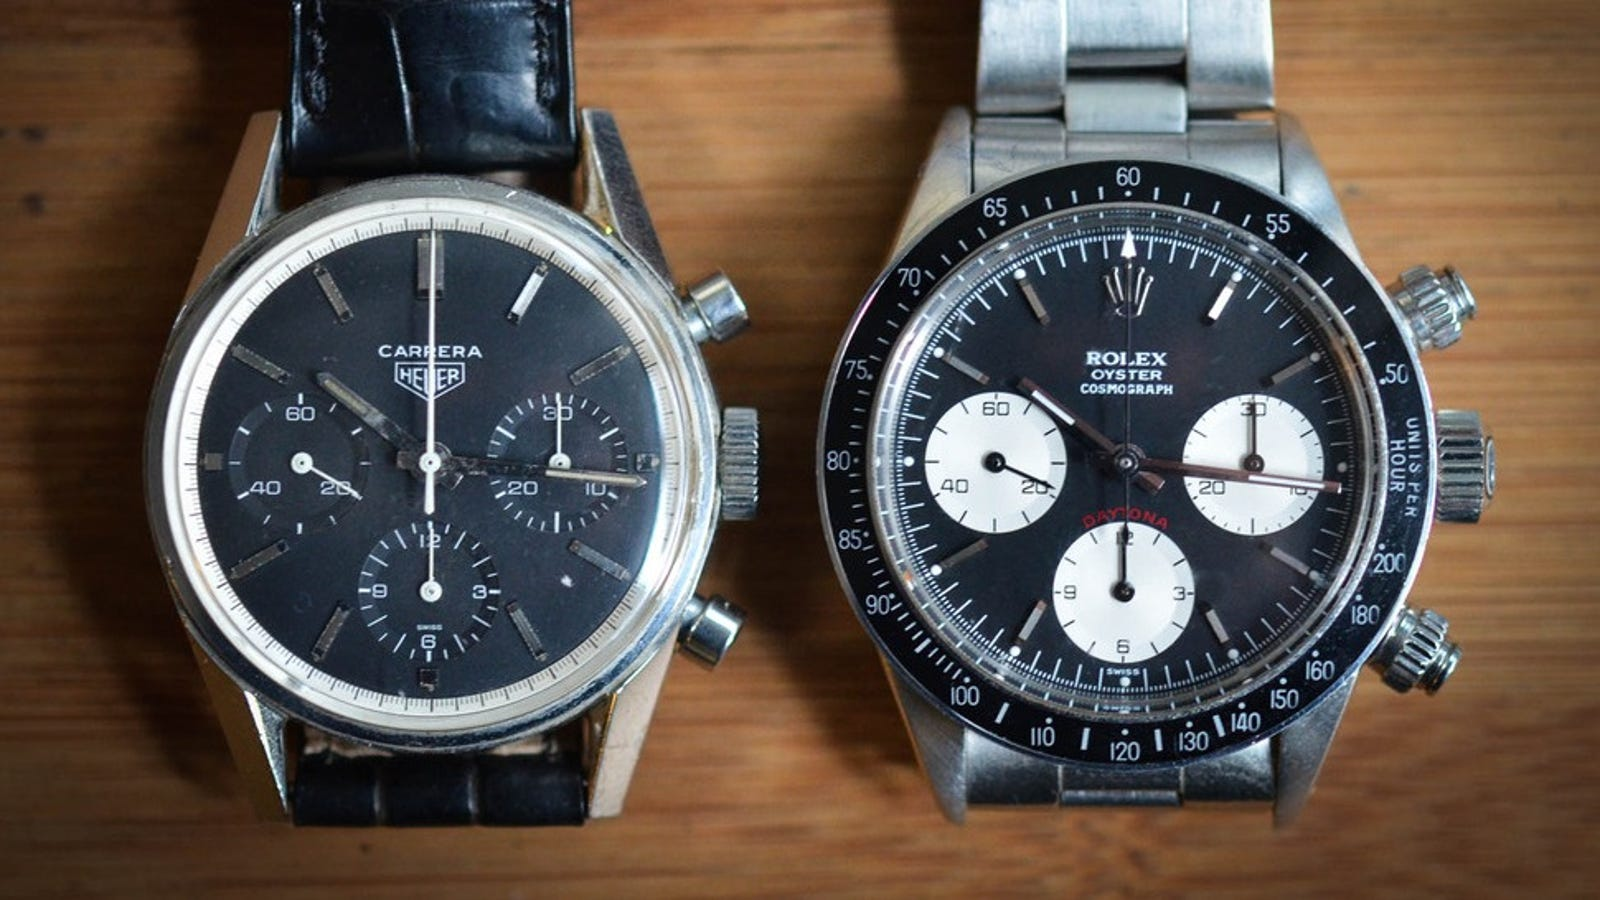 An Introduction To Complications: The Chronograph